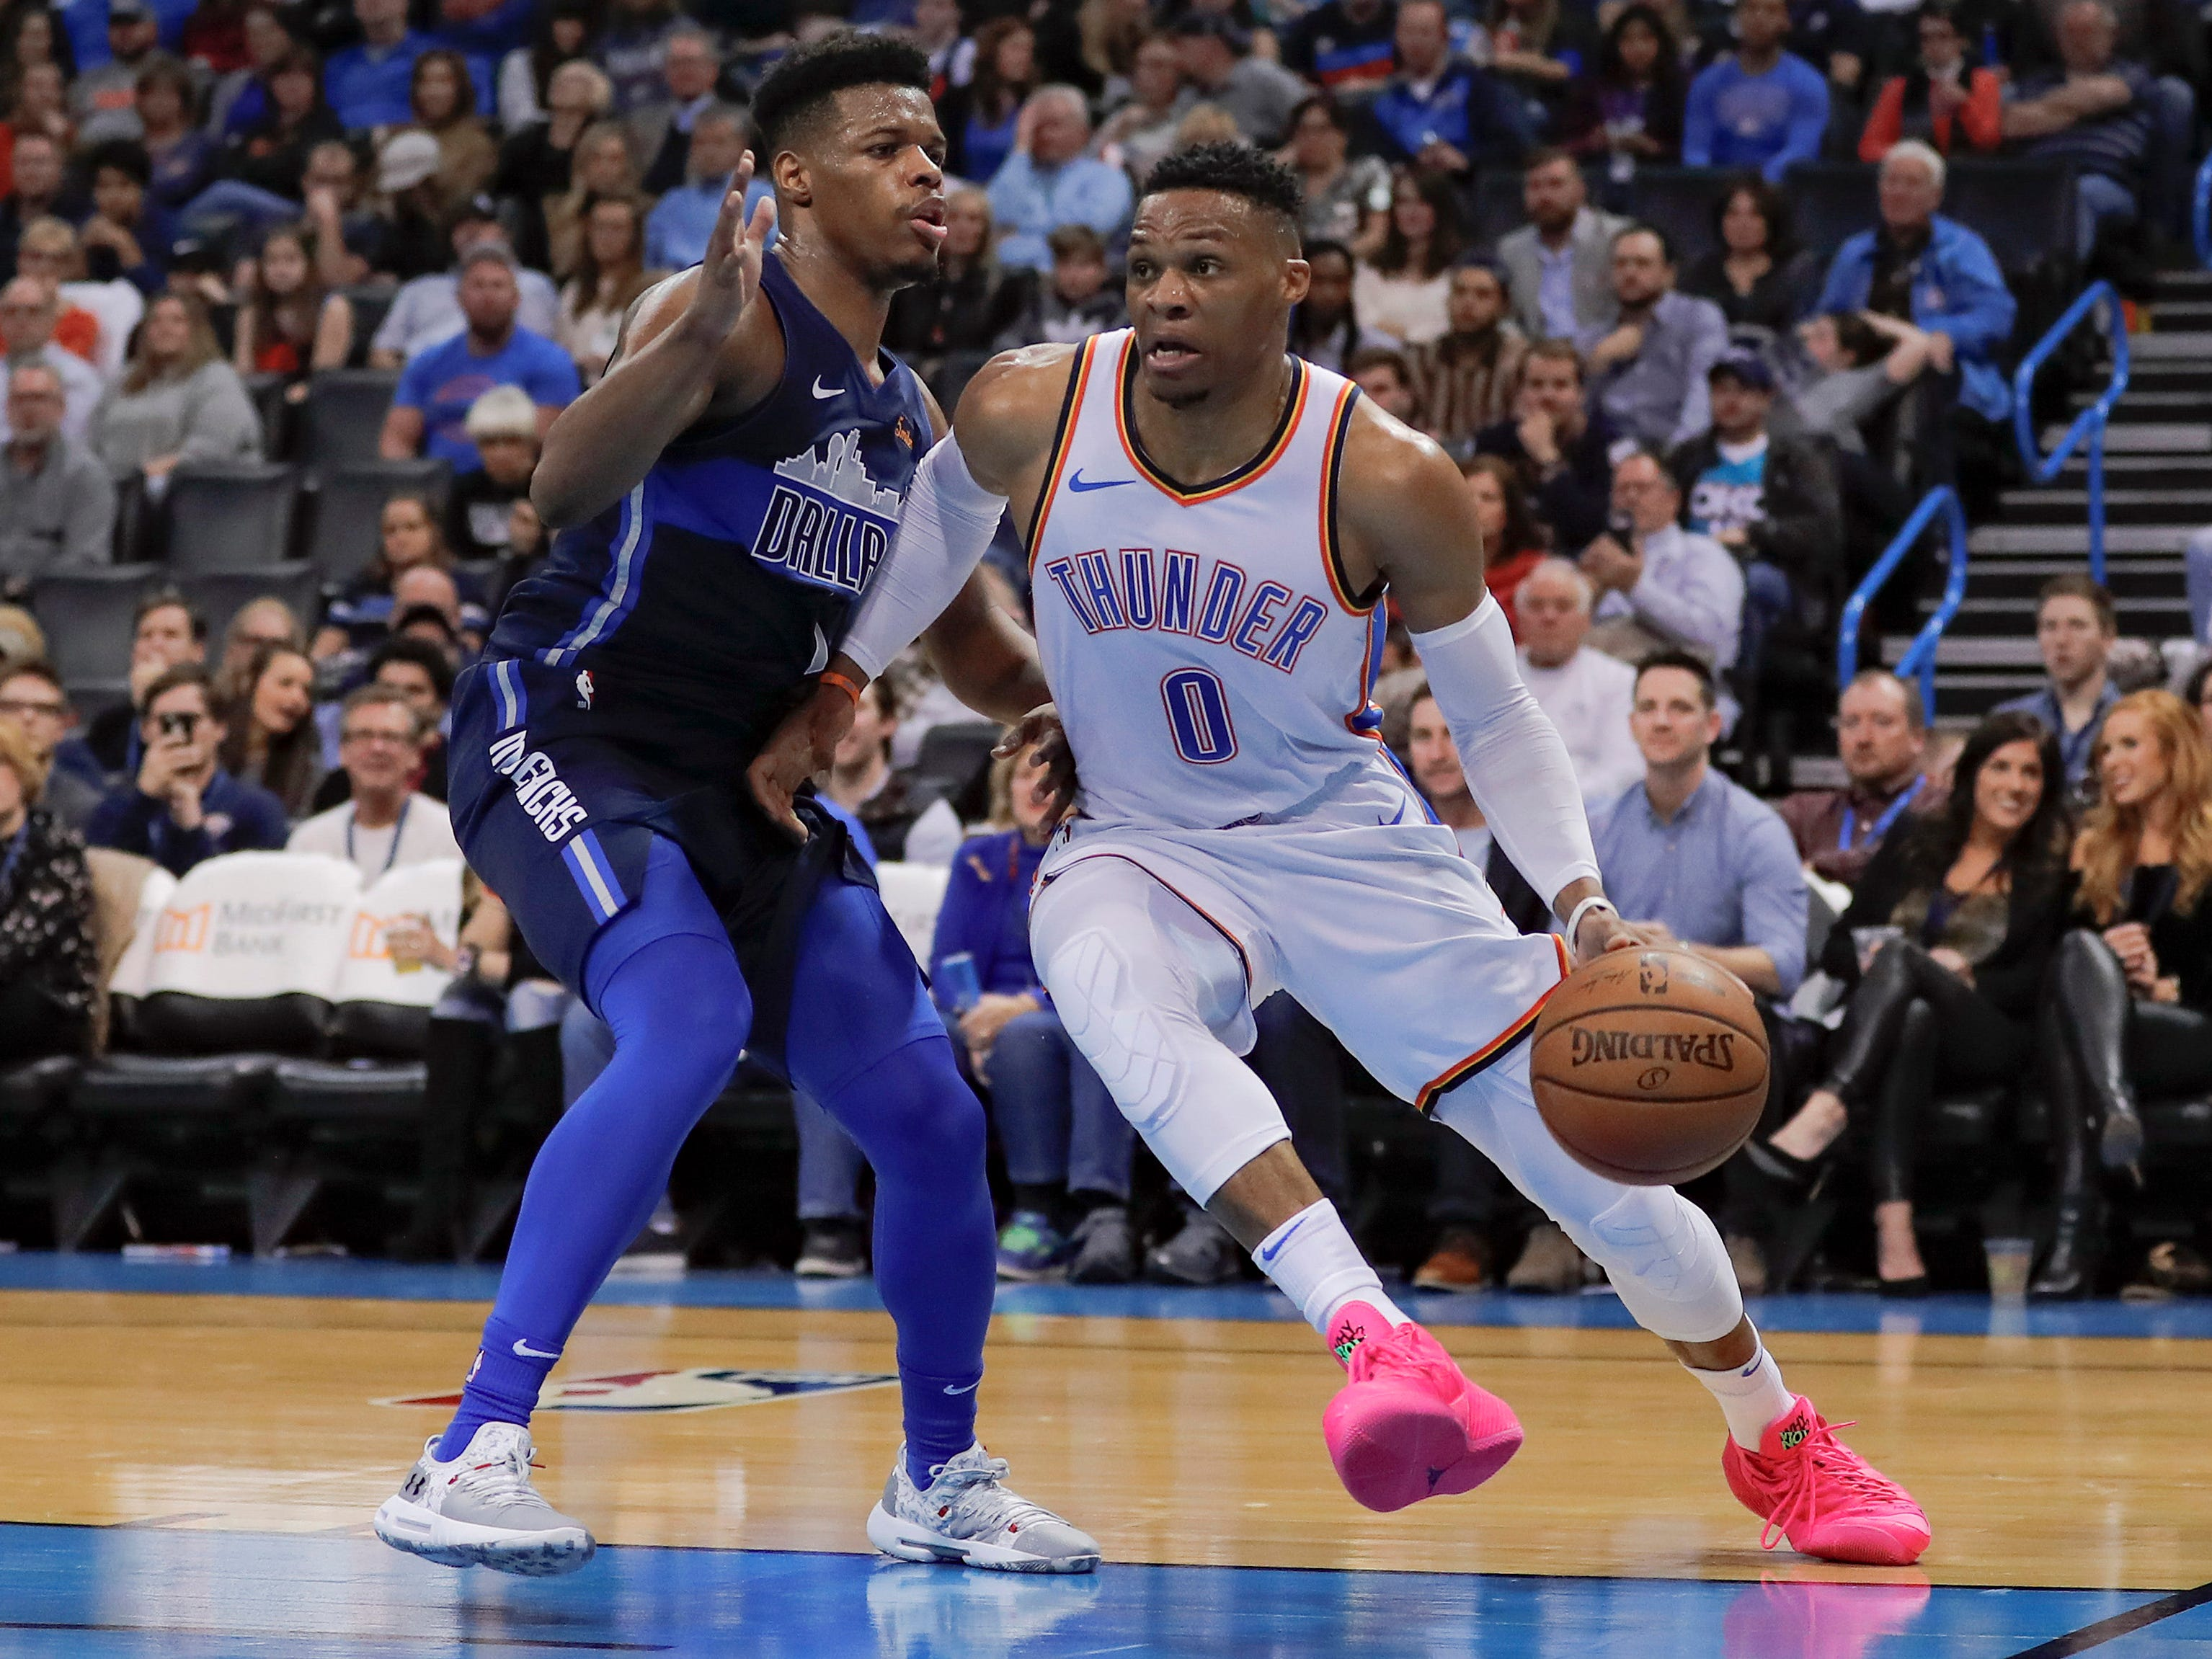 38. Russell Westbrook, Thunder (Dec. 31): 32 points, 11 rebounds, 11 assists in 122-102 win over Mavericks (10th of season).